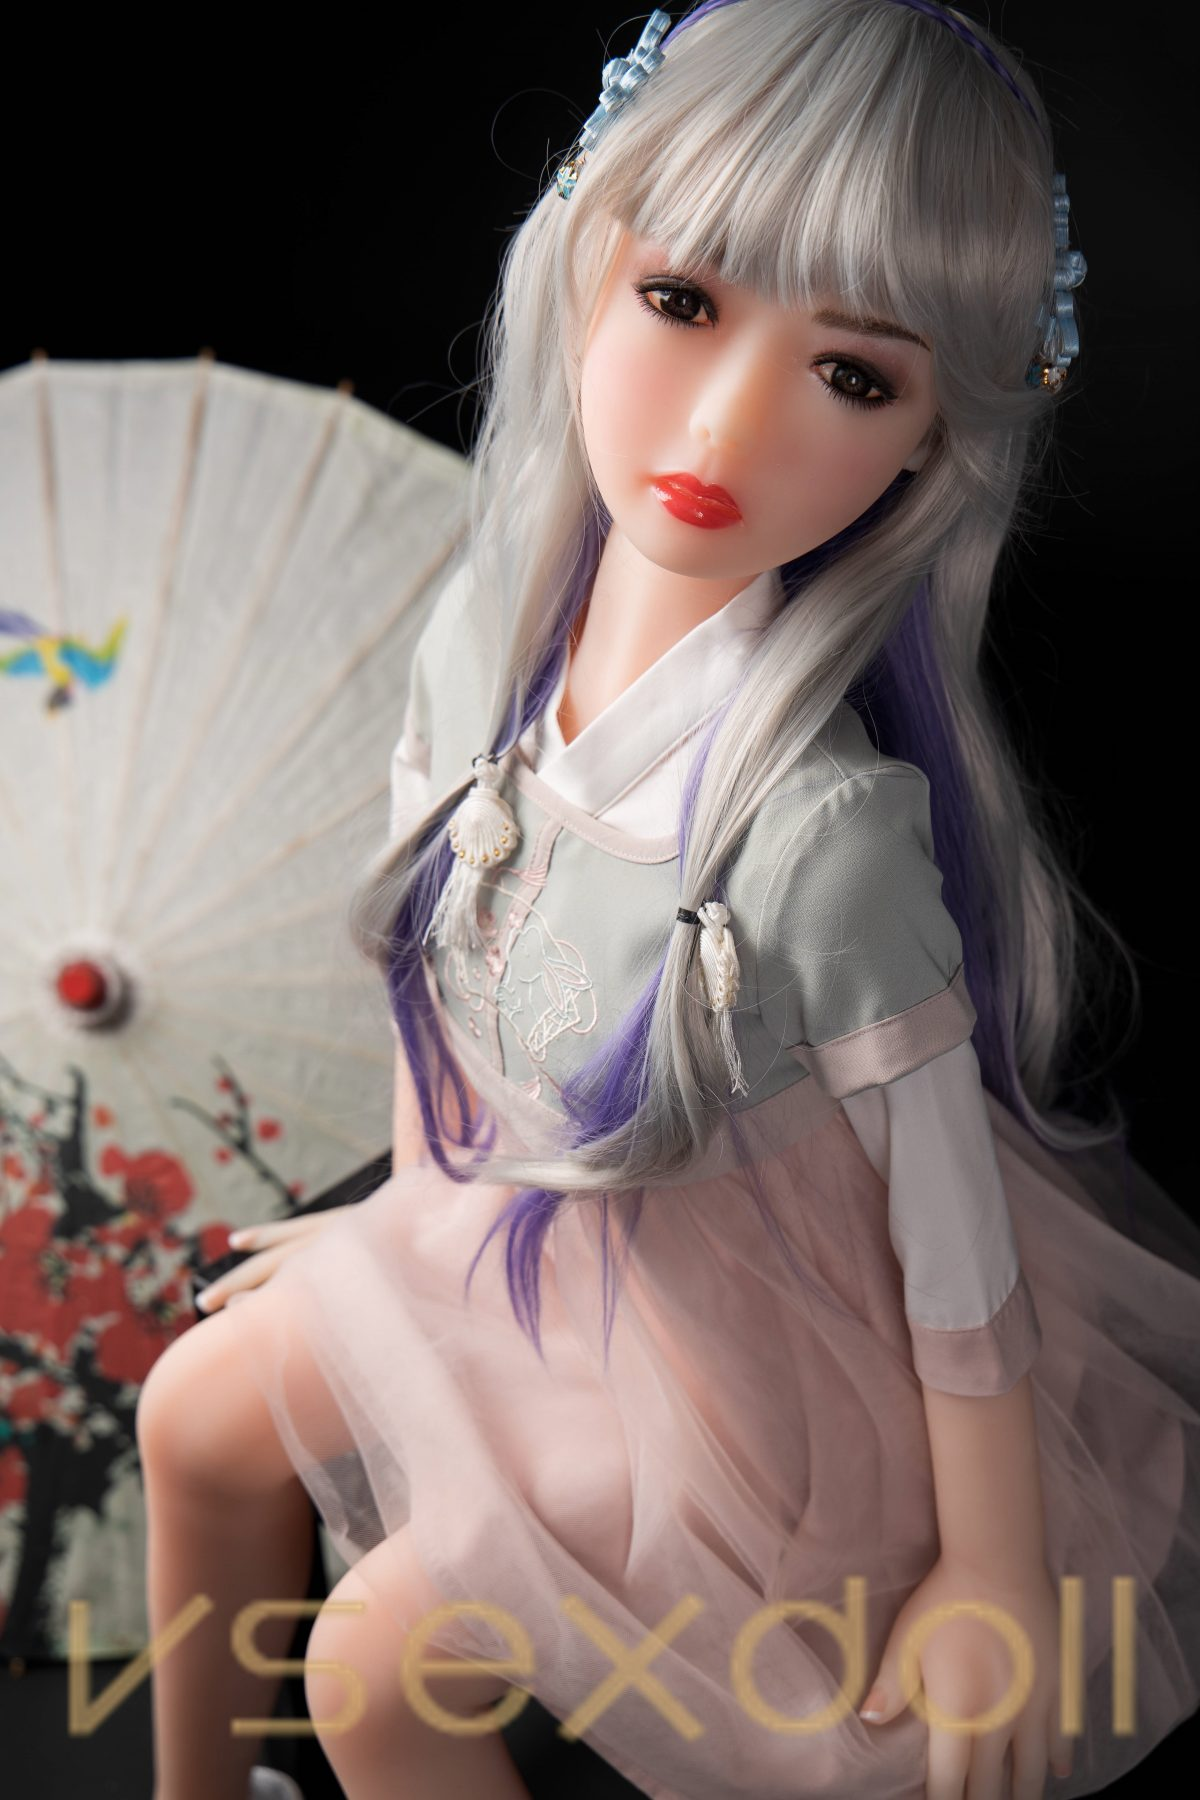 YB-00071 125cm White Hair Blonde Skin Antique Mini Sex Doll